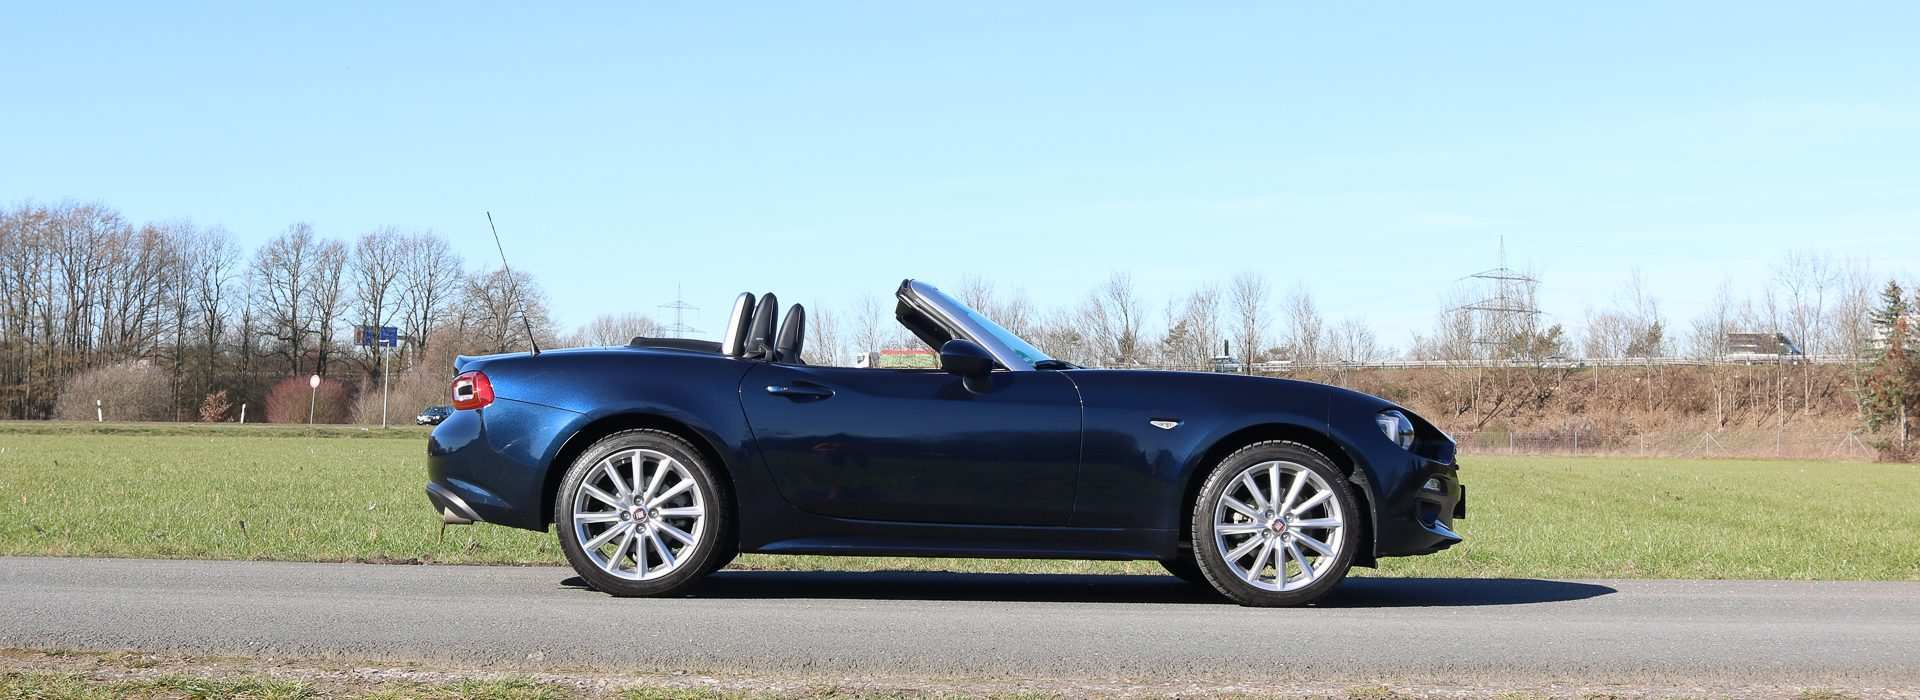 49 All New 2019 Fiat Spider Redesign And Concept